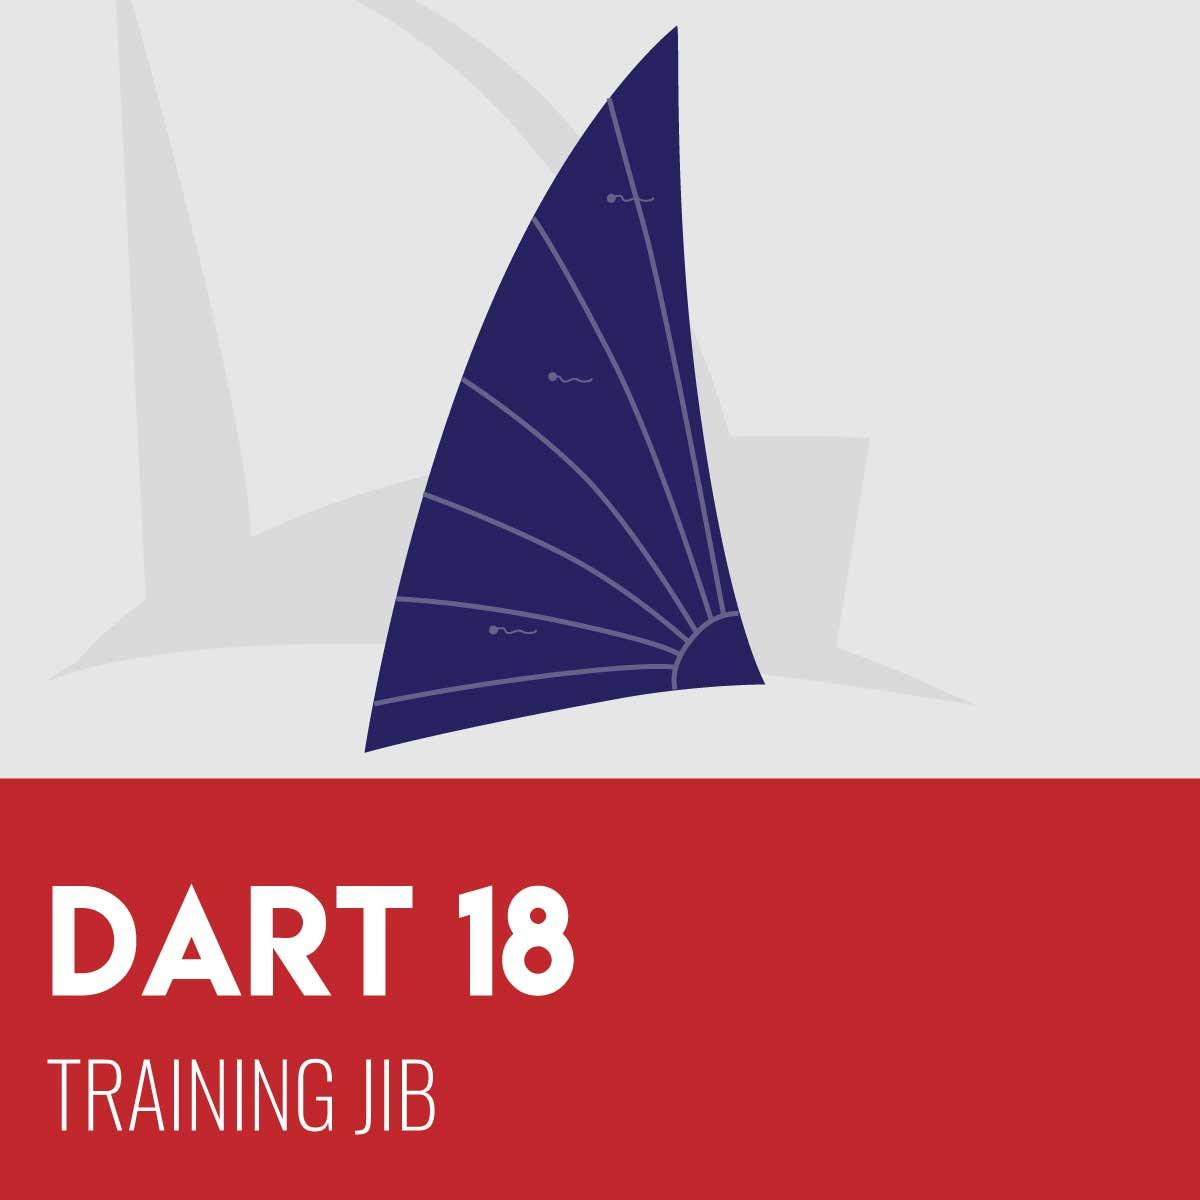 Dart 18 Training Jib